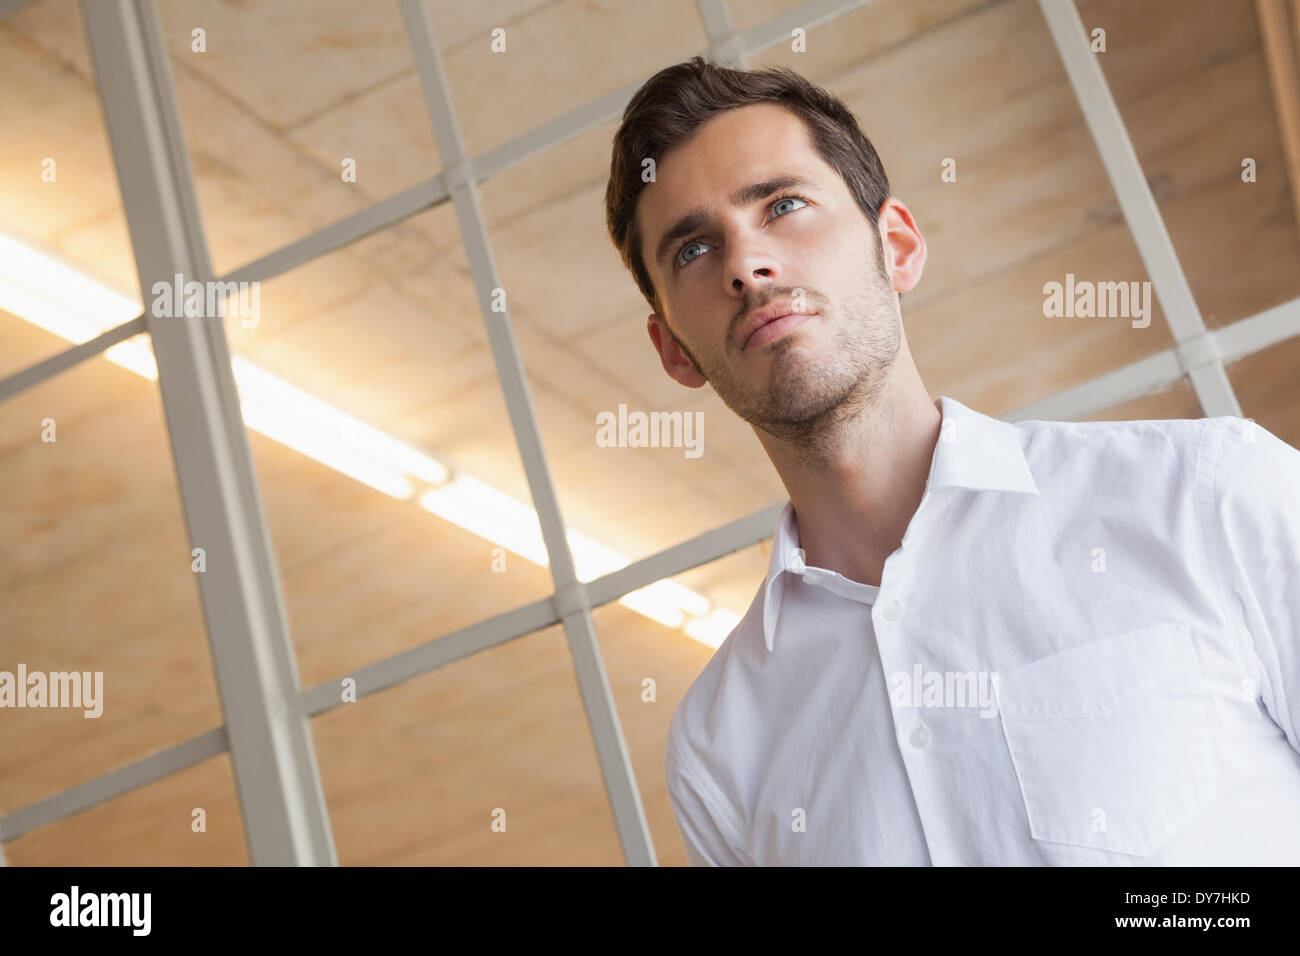 Businessman standing with serious expression Photo Stock